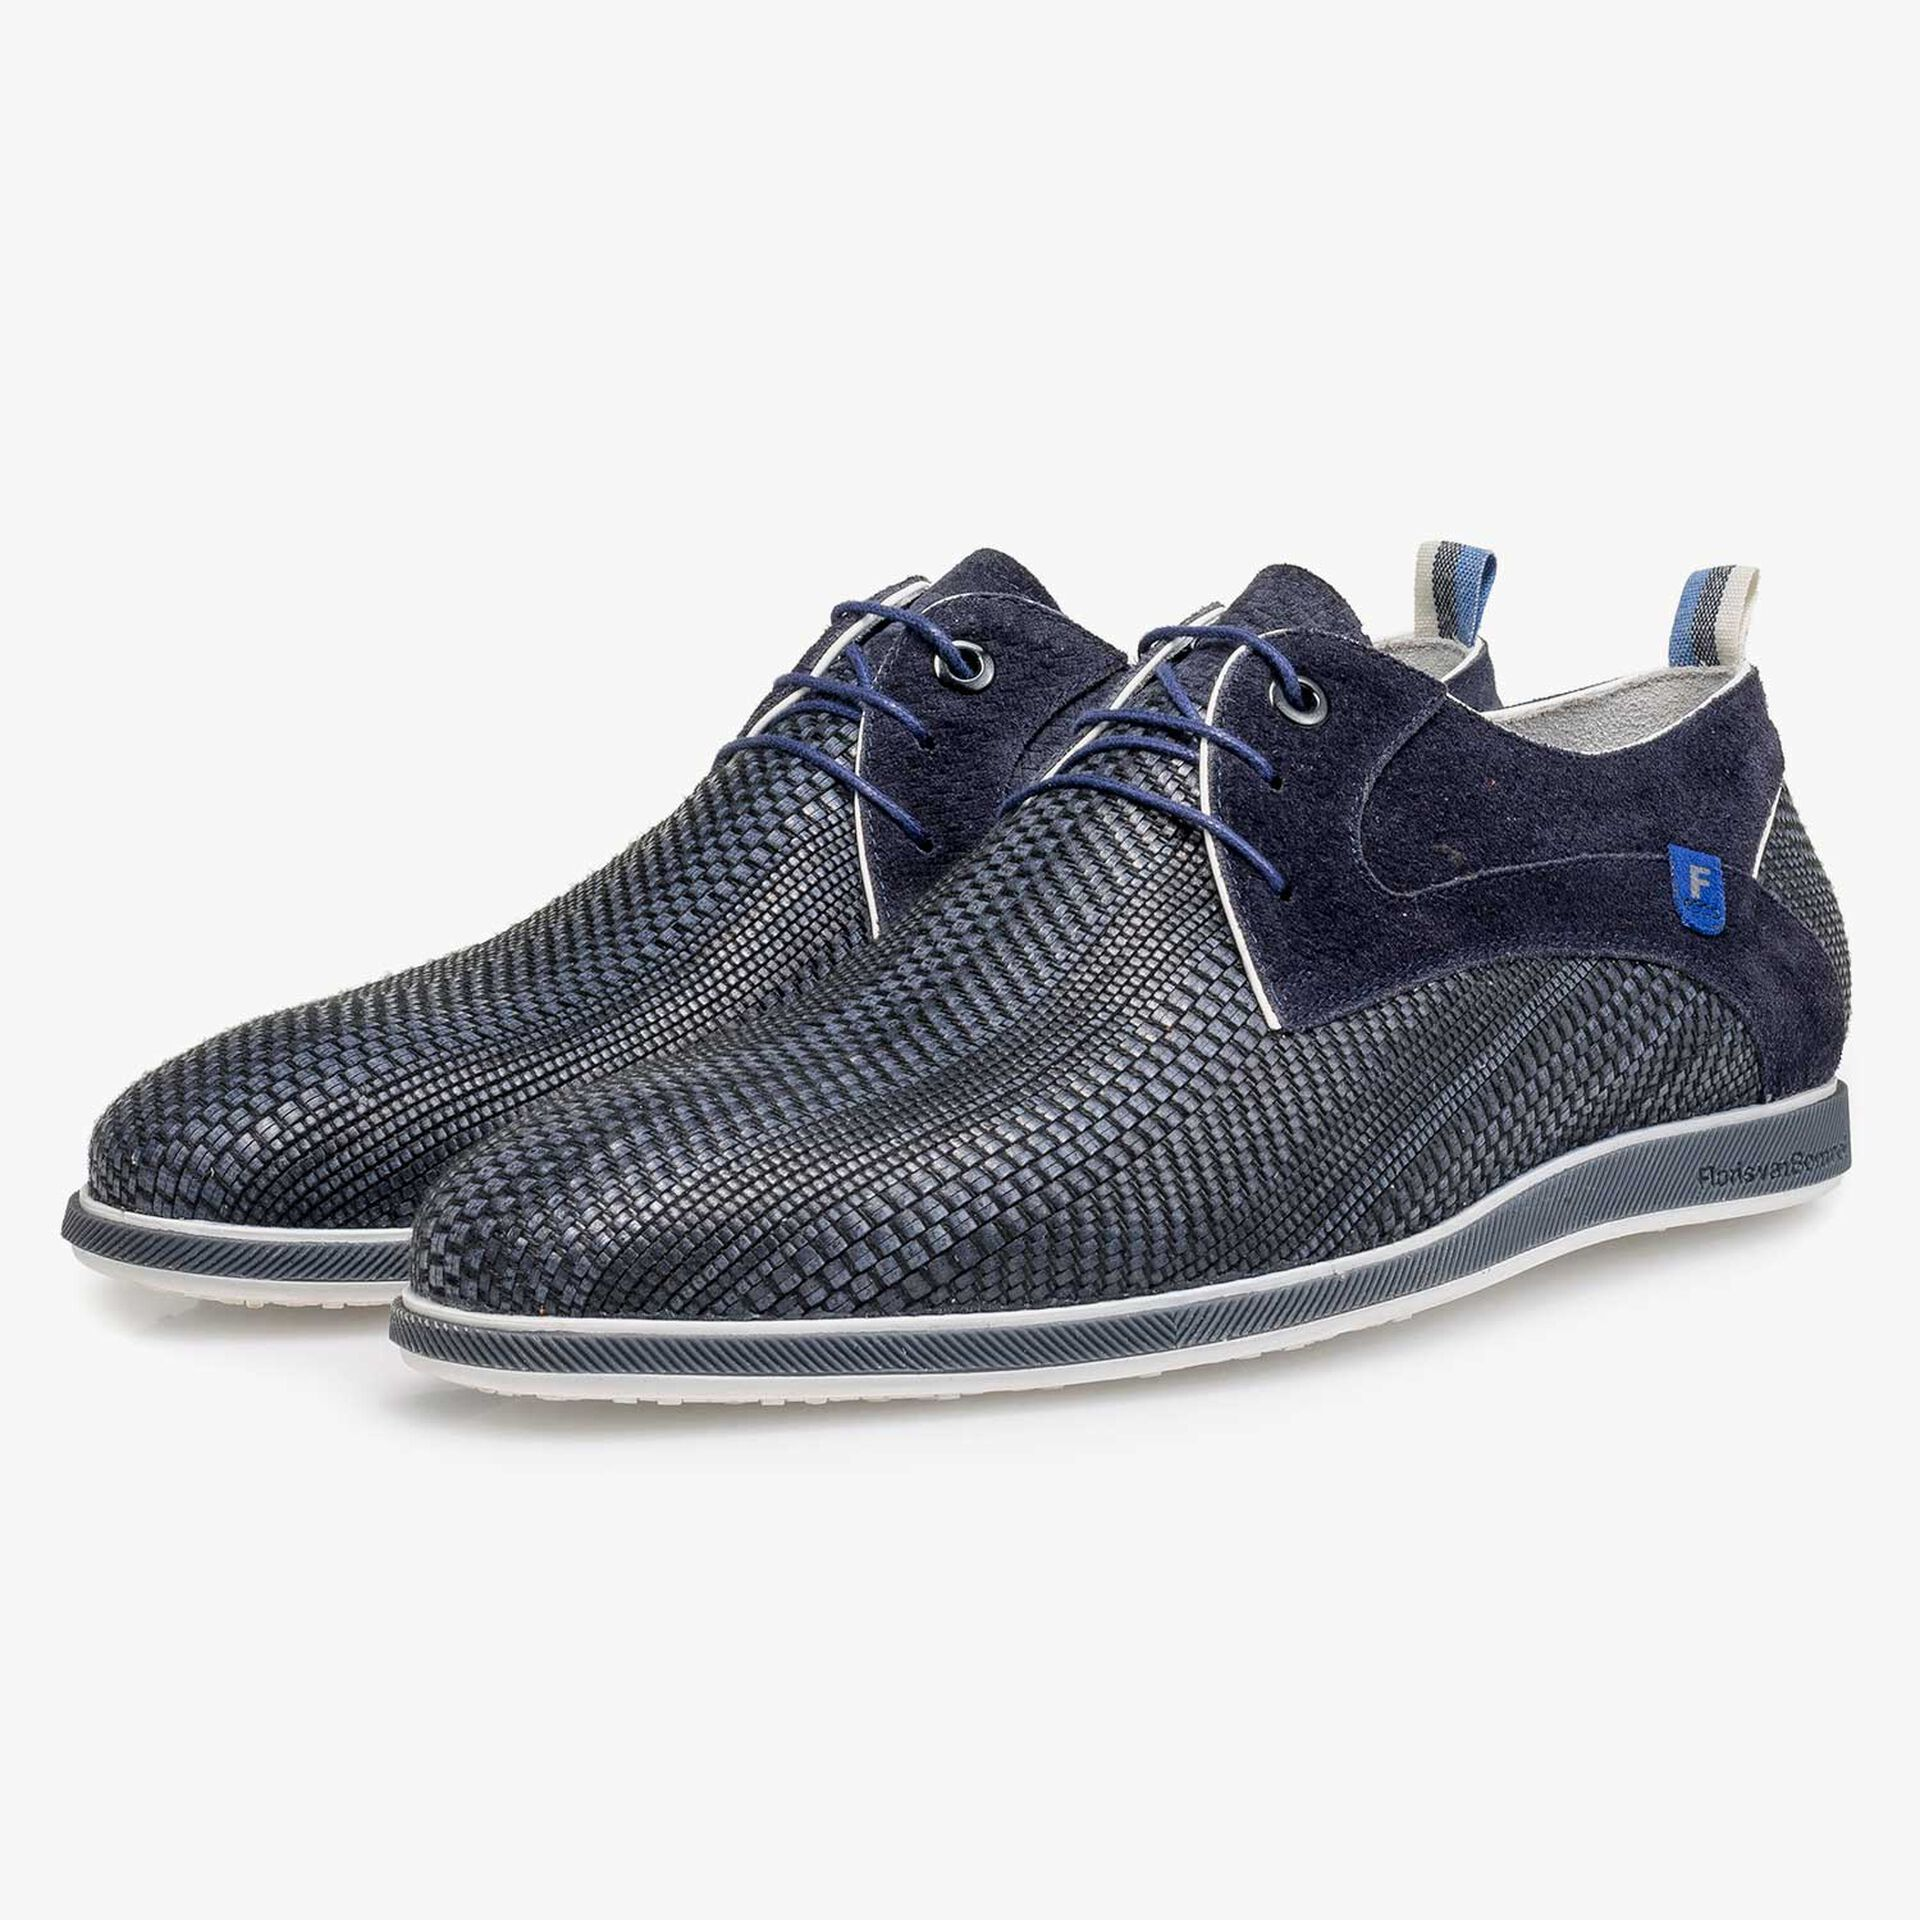 Blue braided leather lace shoe